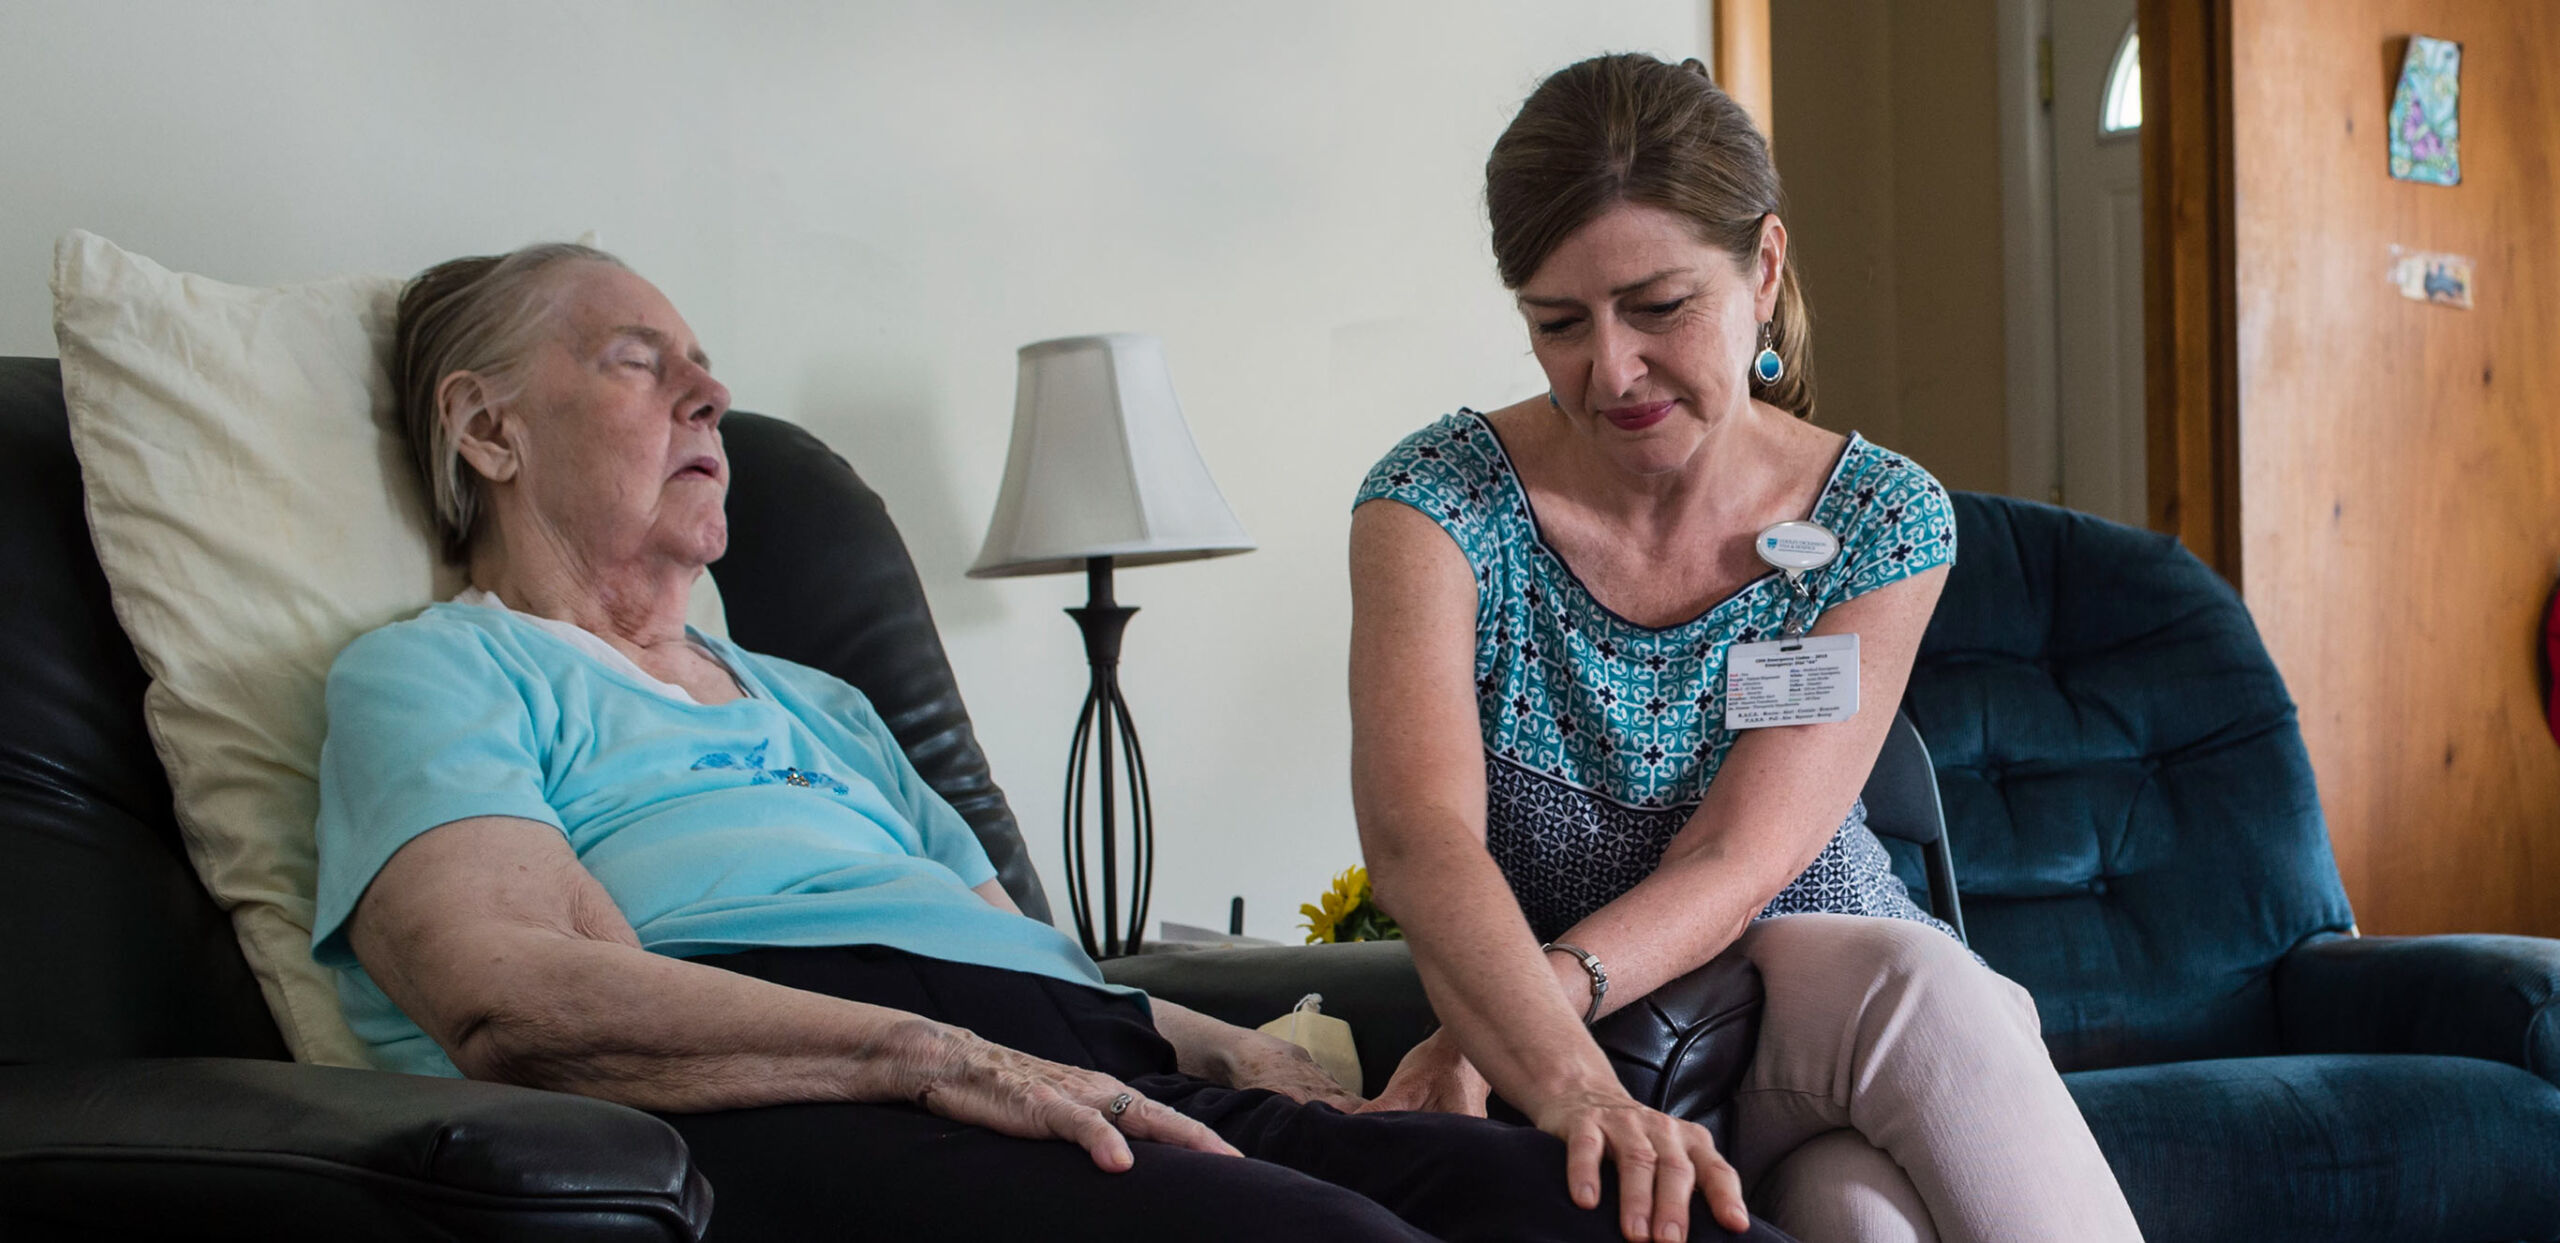 Visiting nurse comforts elderly client in her home, Cooley Dickinson Medical Group Visiting Nurses & Hospice, Northampton, MA 01060.